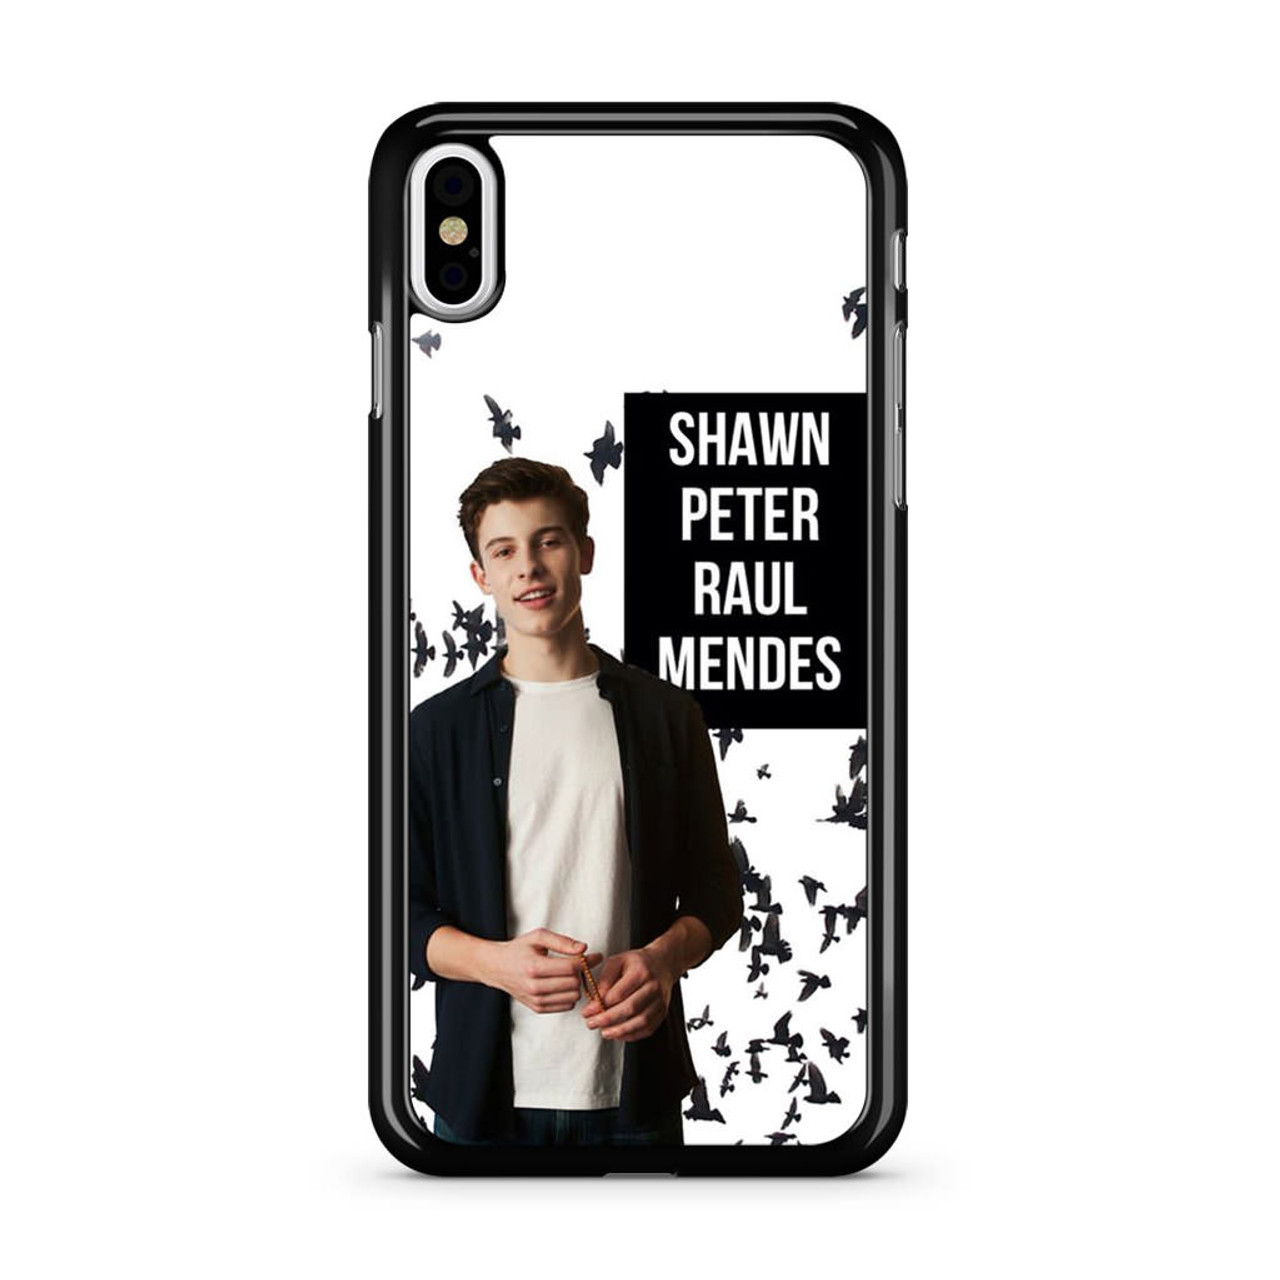 low priced 2b254 bdd0a Shawn Peter Raul Mendes iPhone X Case